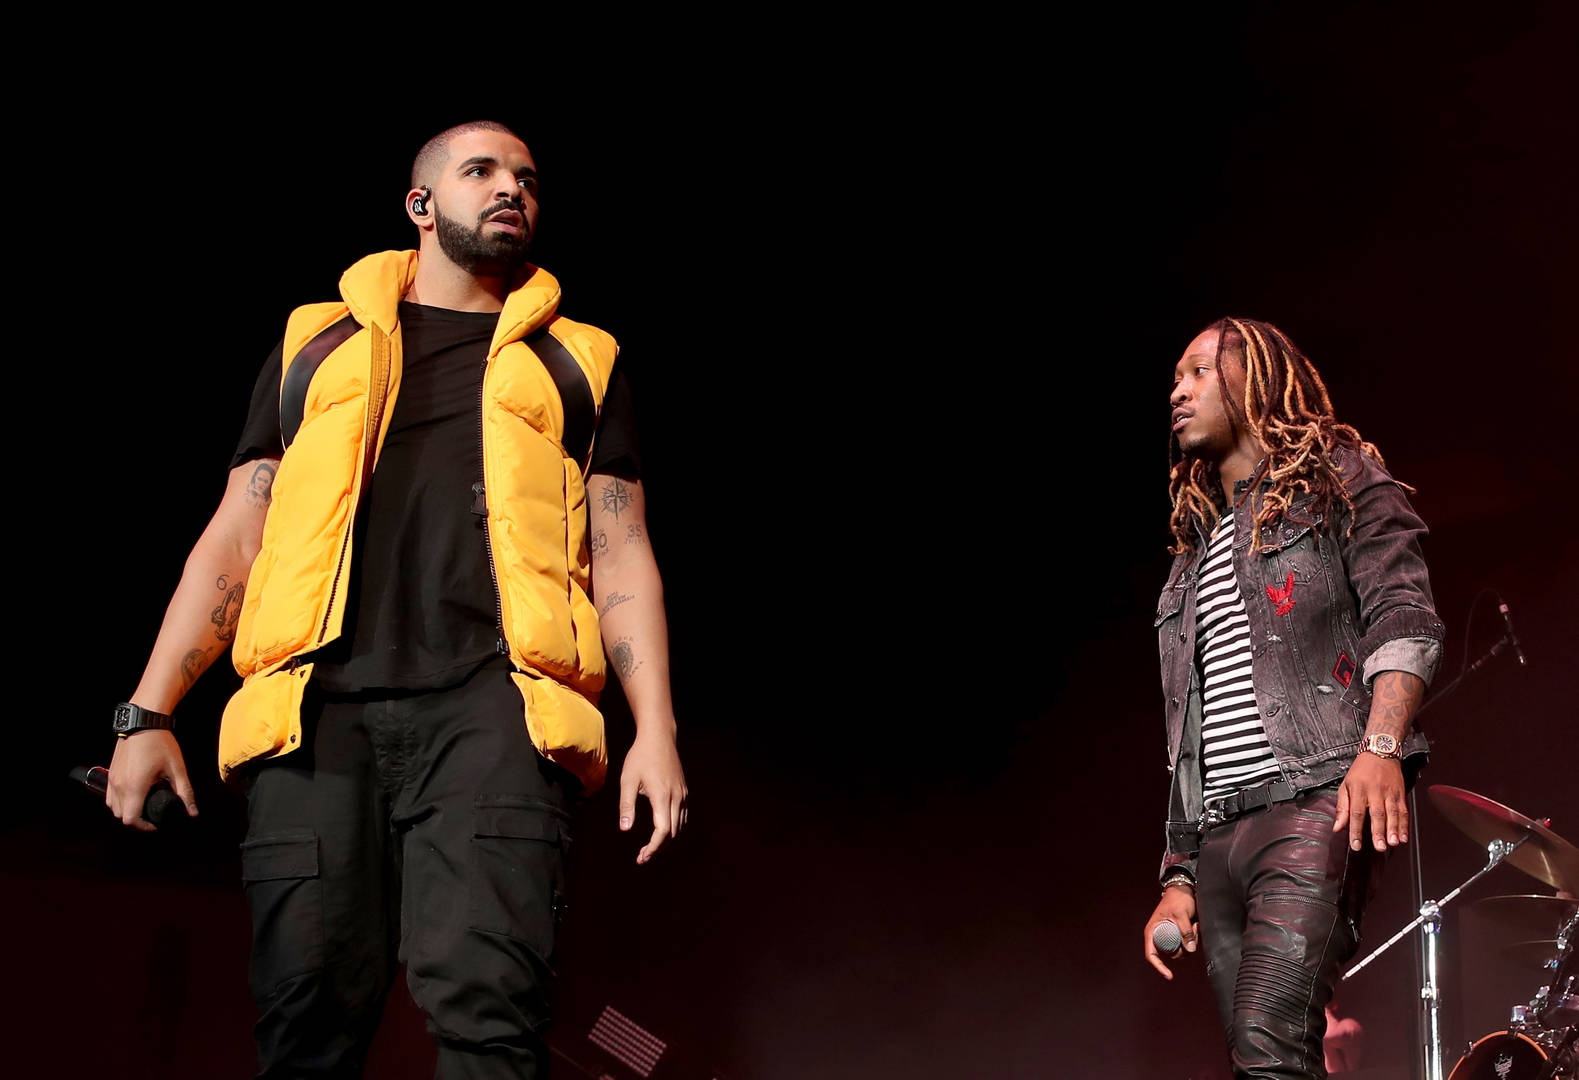 Drake and Future debut 'Life is Good' video